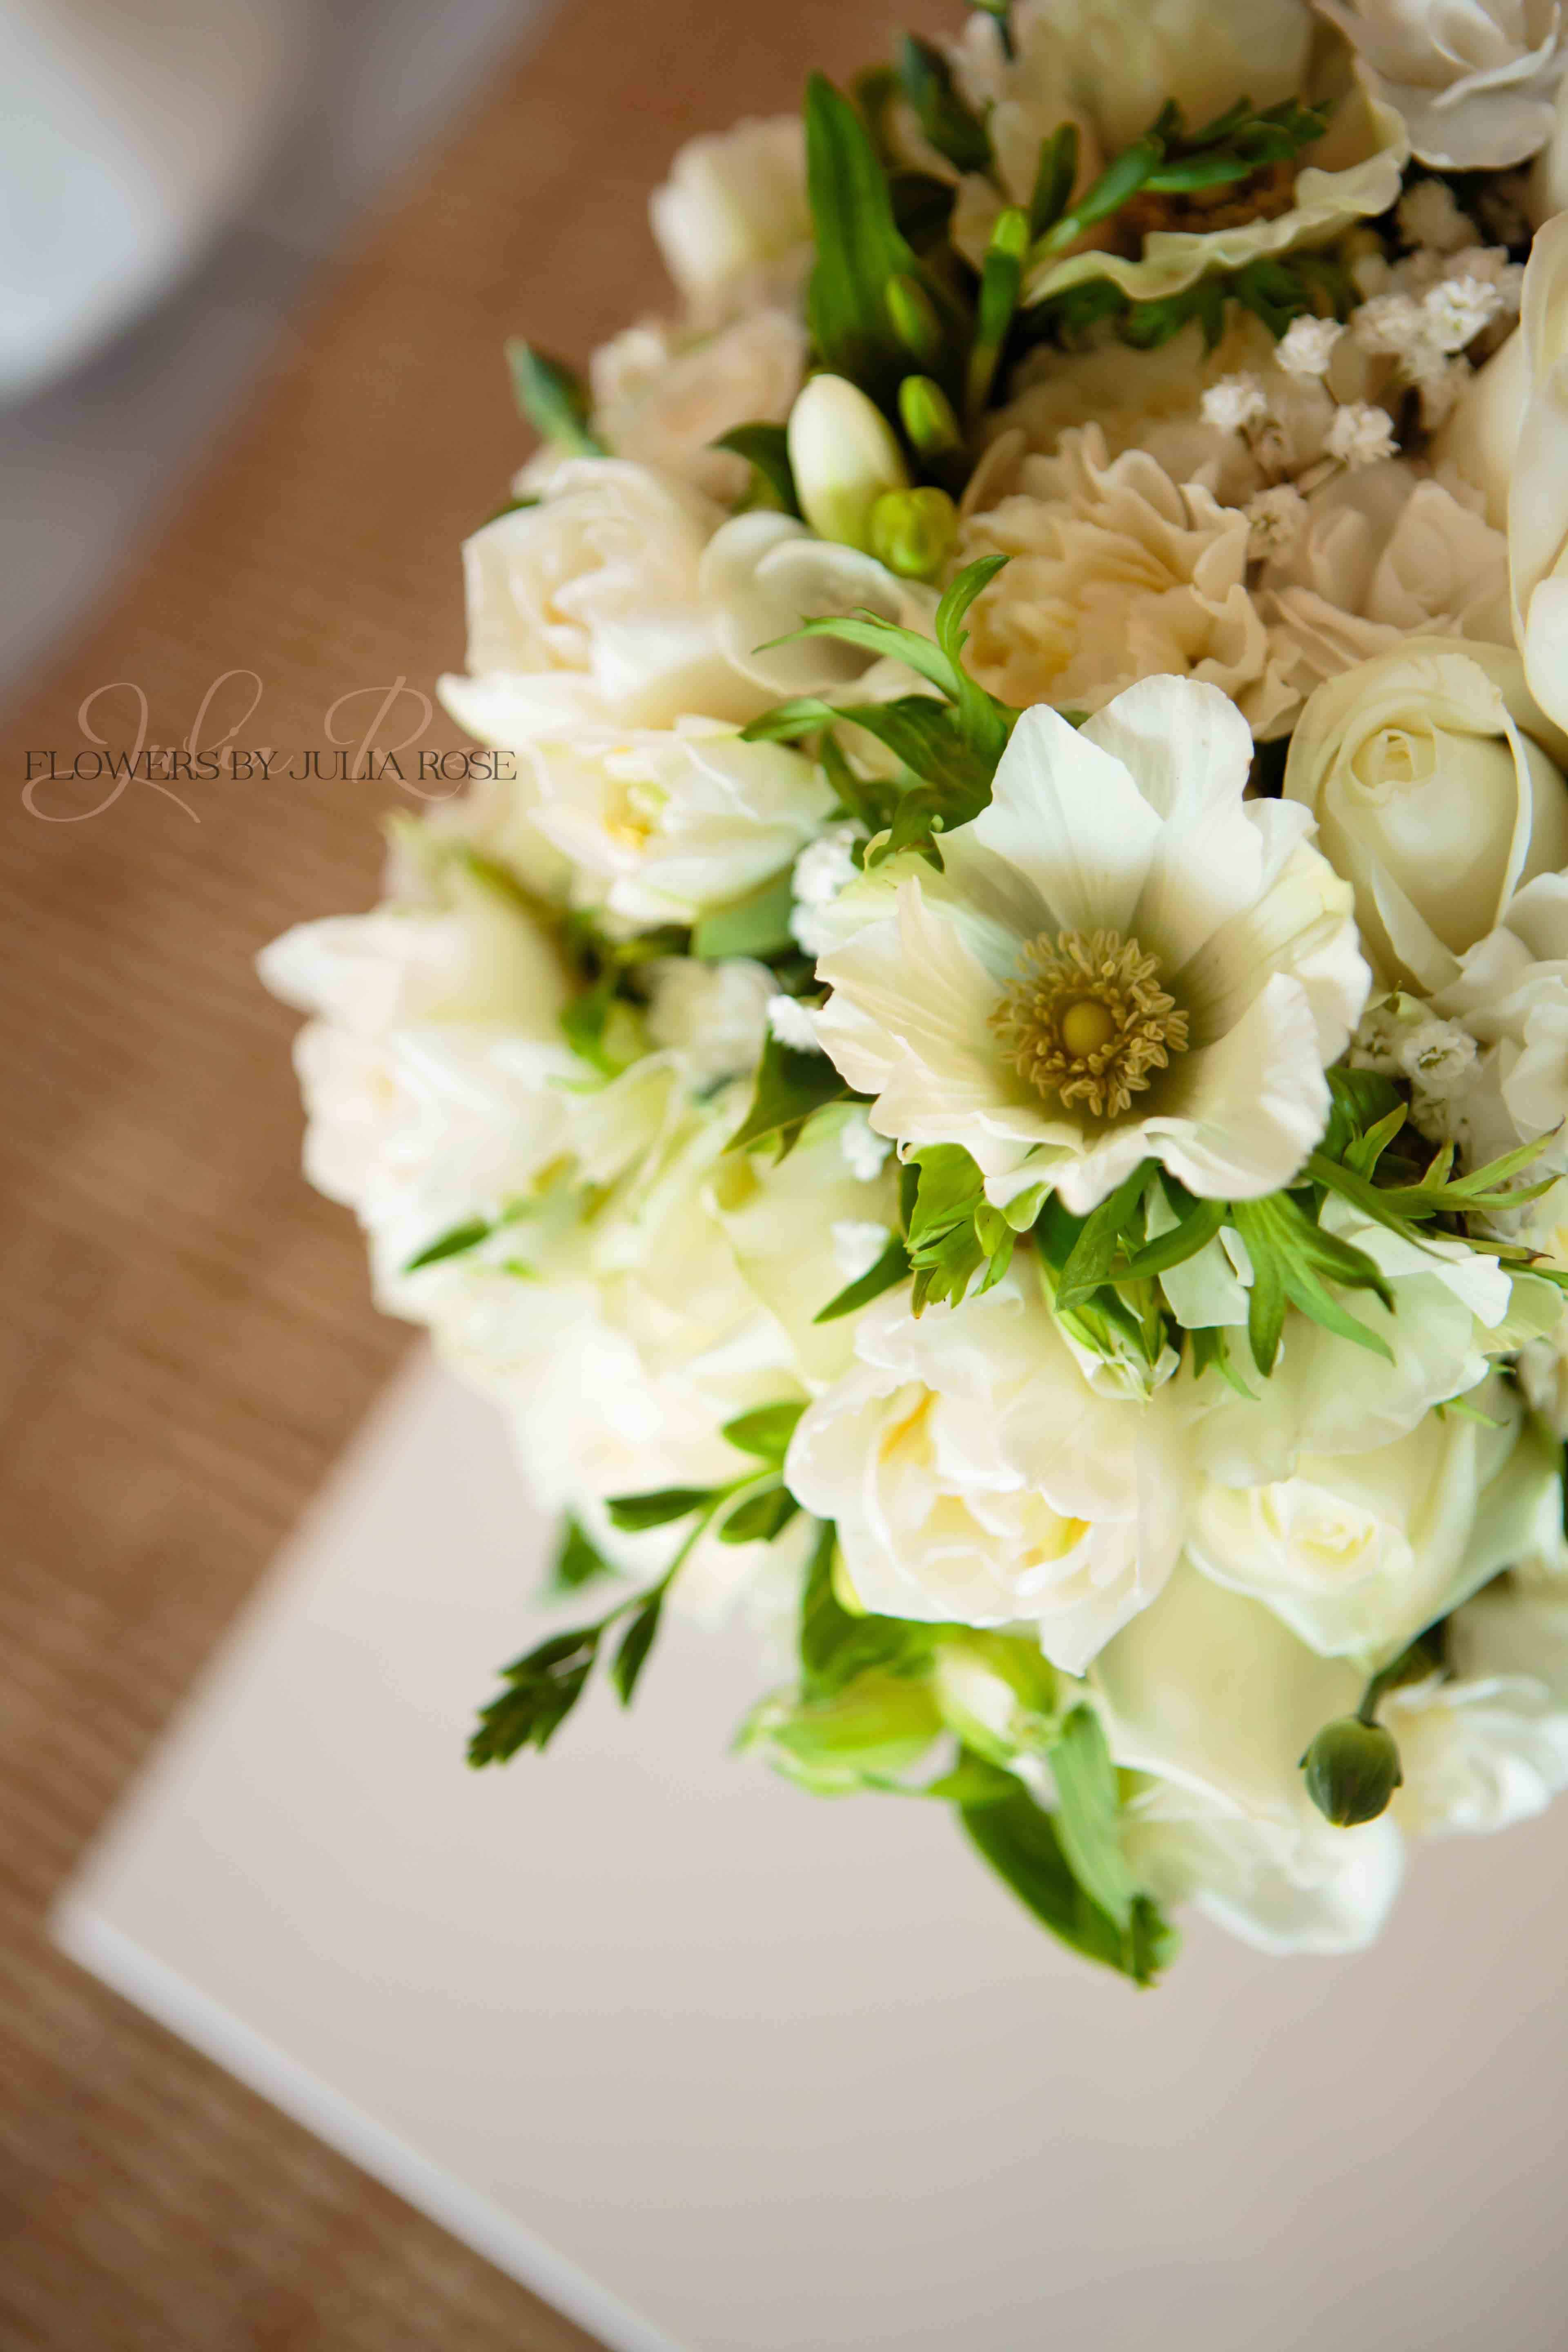 White And Green Wedding Luxe Byron Bay Cafe Flowers By Julia